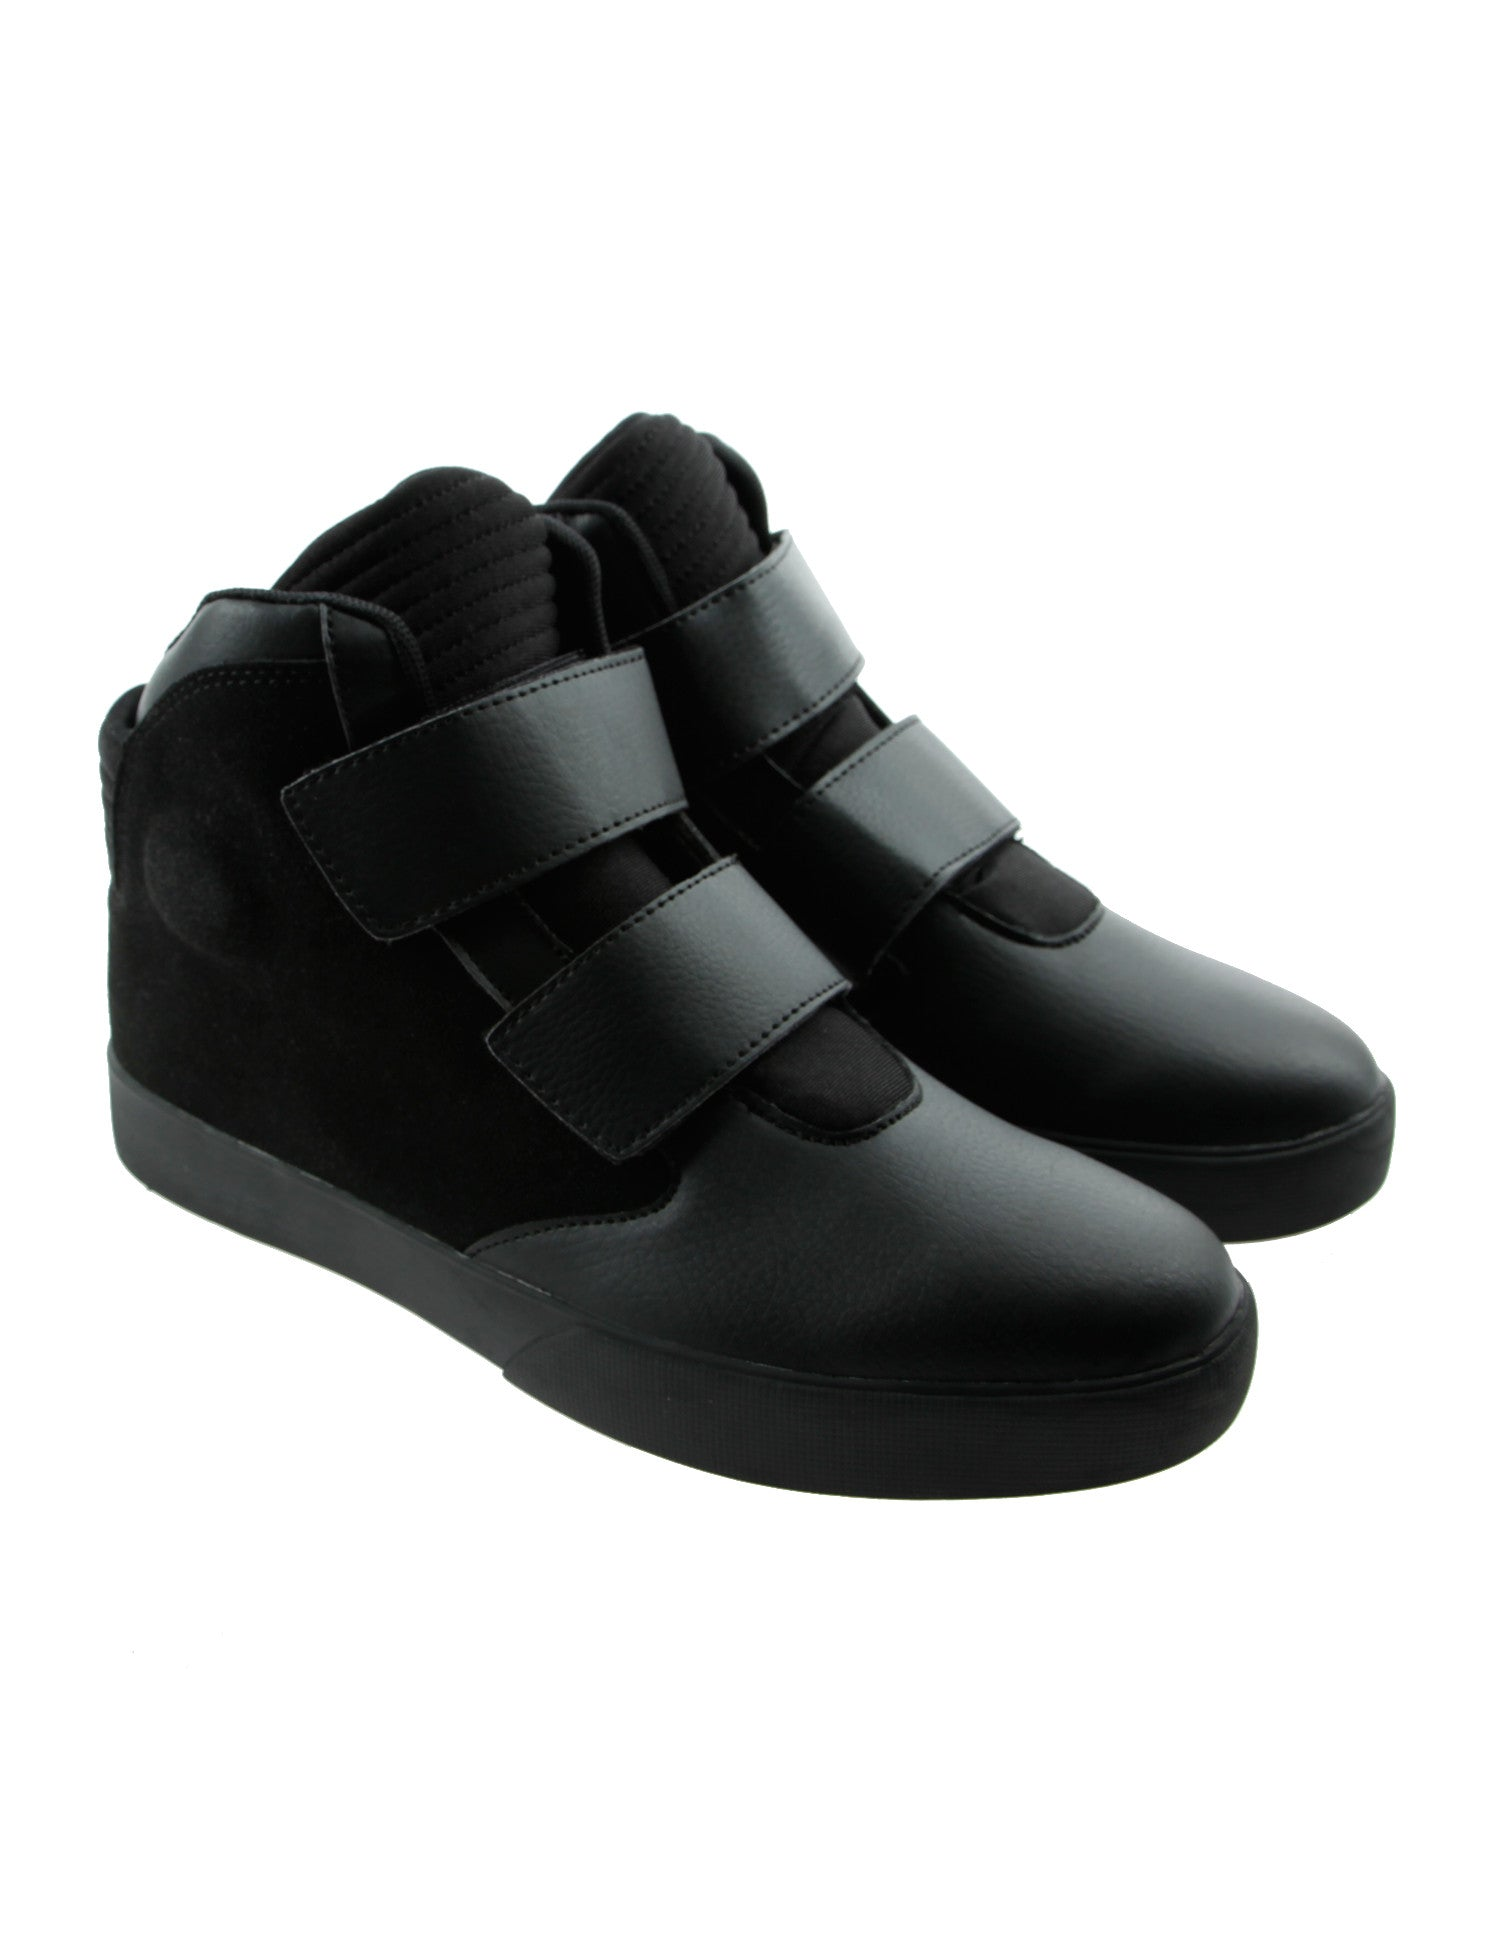 Cultz 150821 Shoes  Black